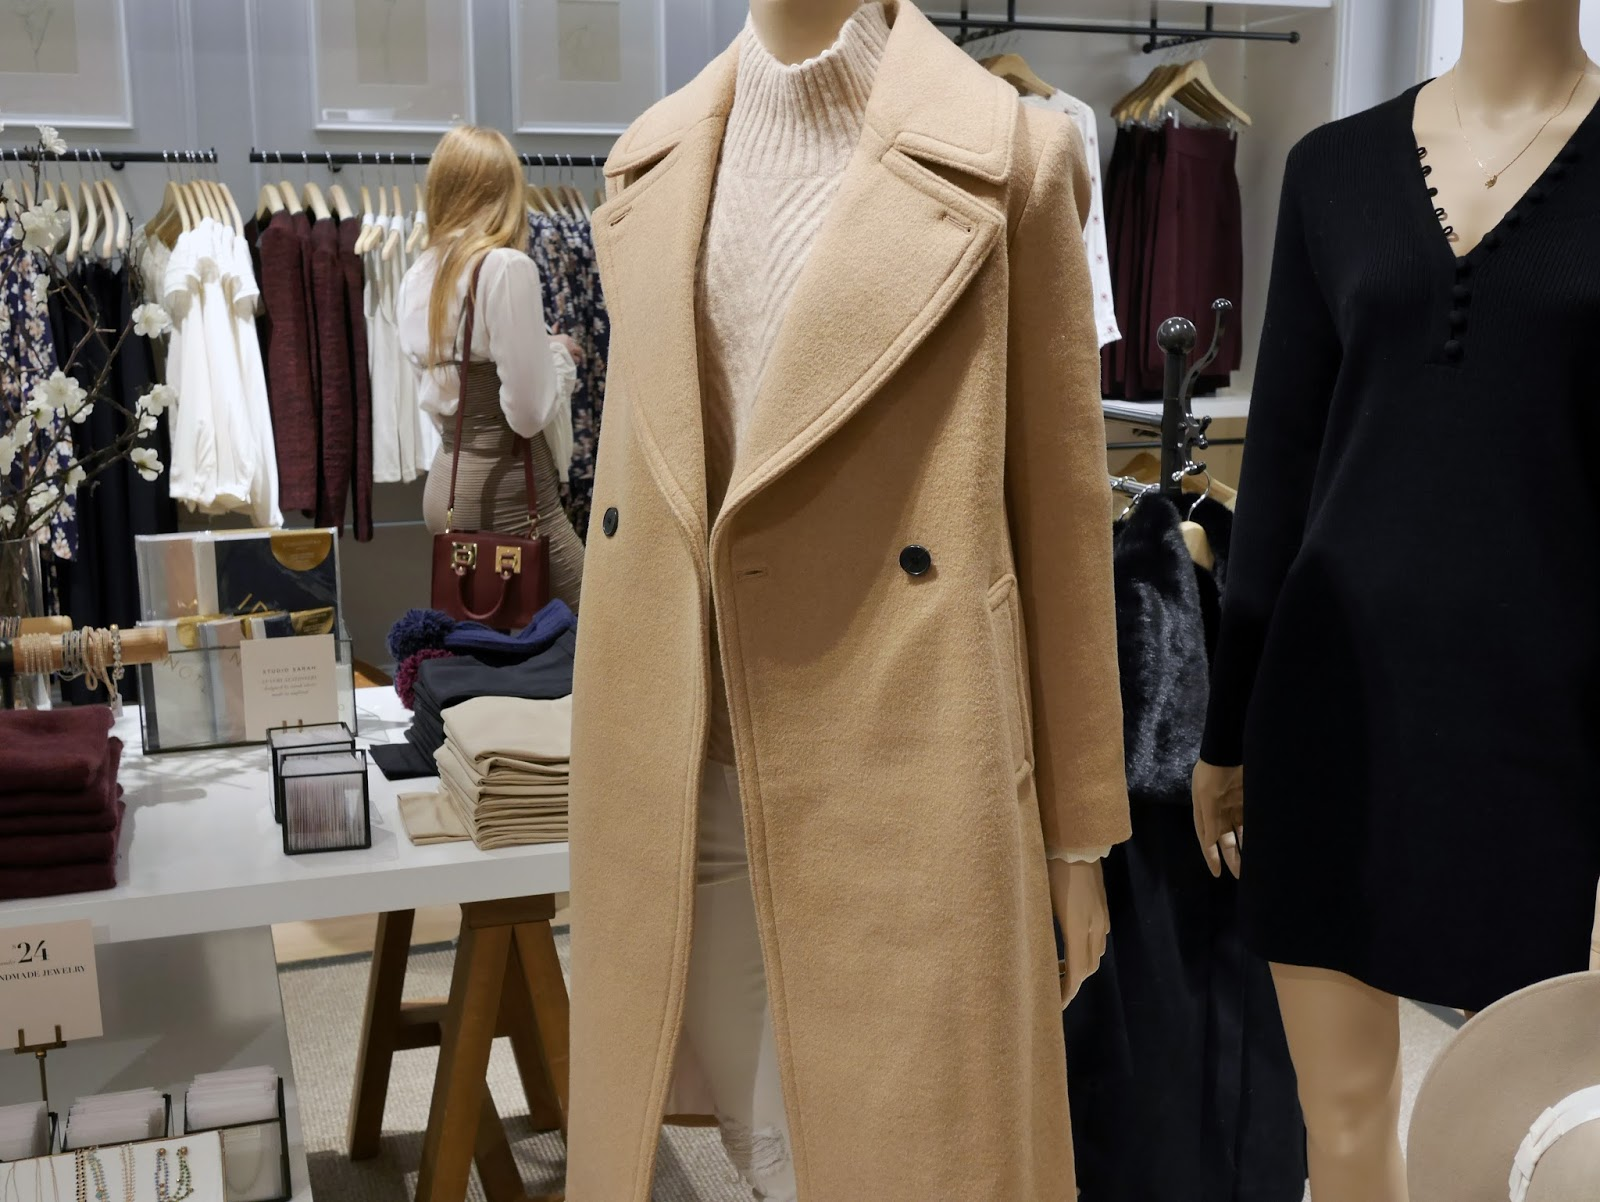 Club Monaco Rideau Centre Fall Winter 2016 collection